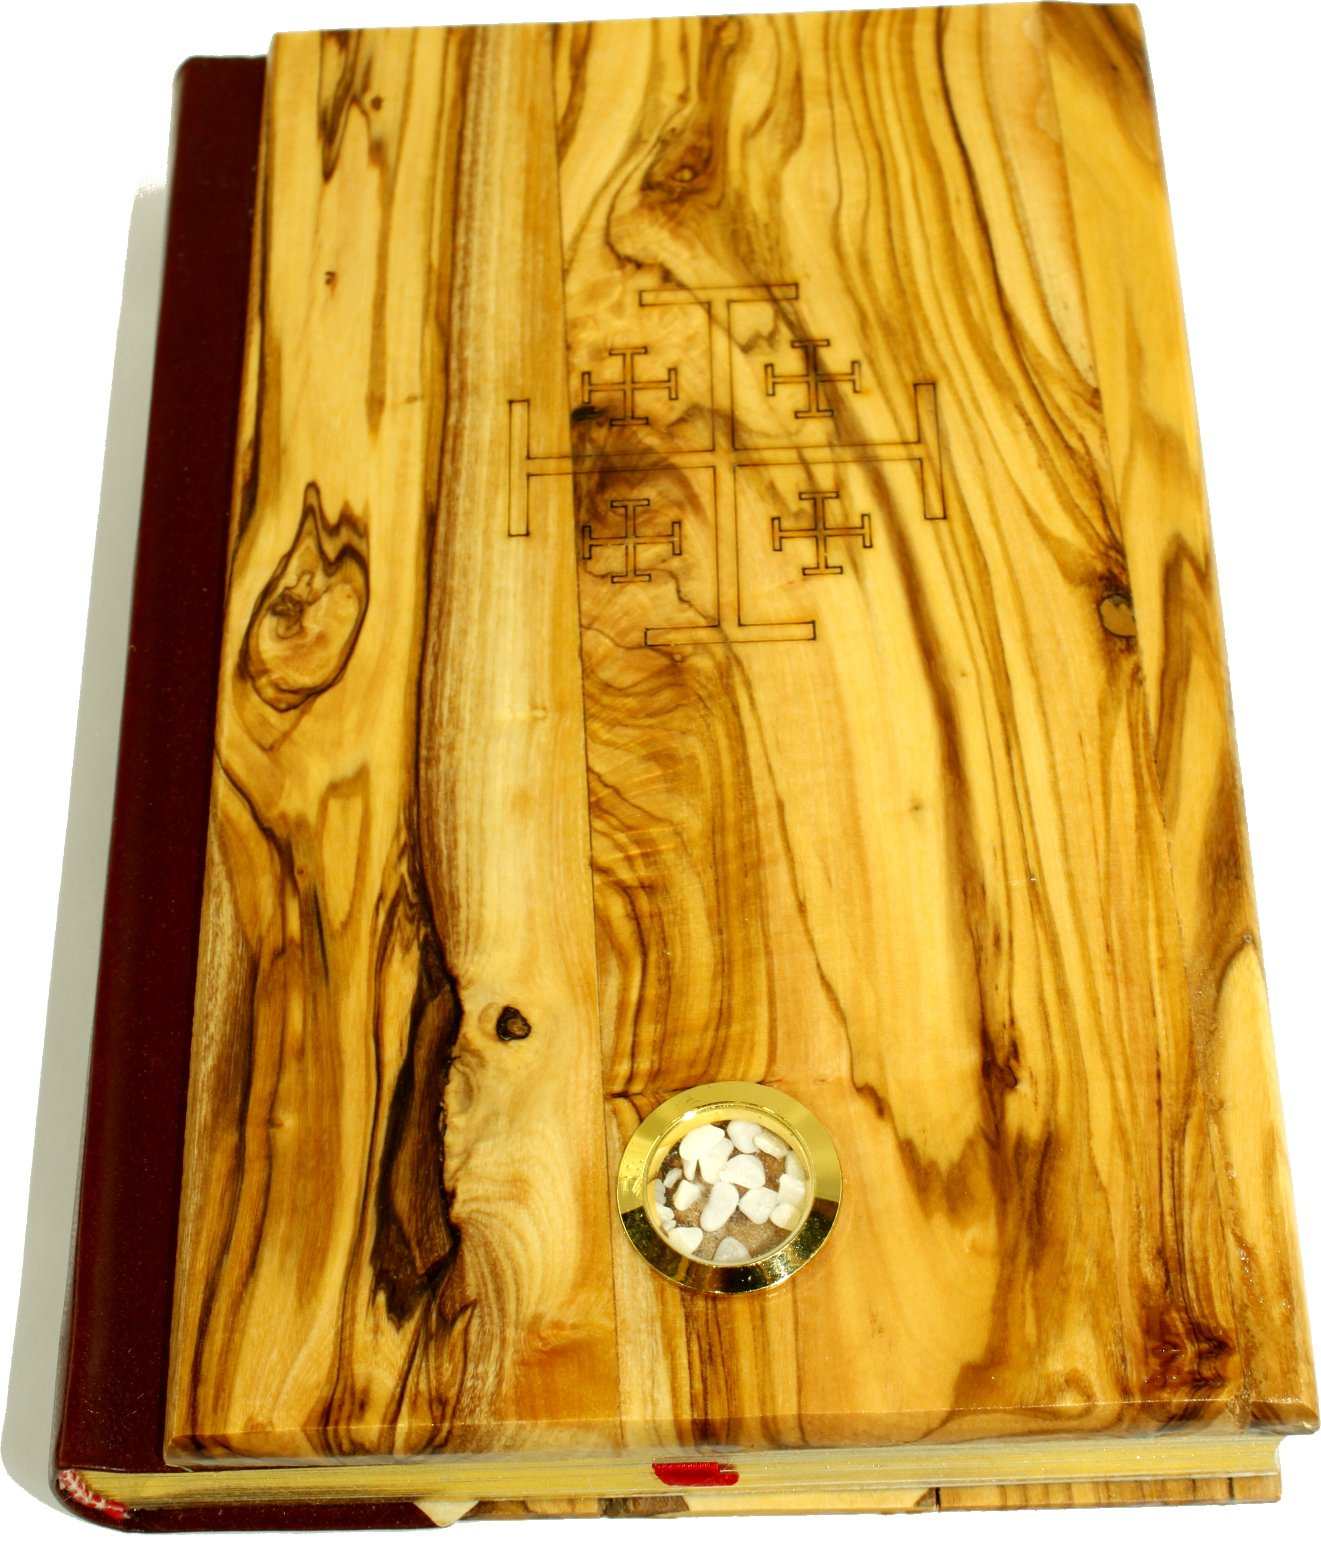 Olive Wood covered Millennium Bible with 'Jerusalem Stones' ~ Red-letter King James Version of the Old and the New Testament (Large - 8 x 5.5 Inches)